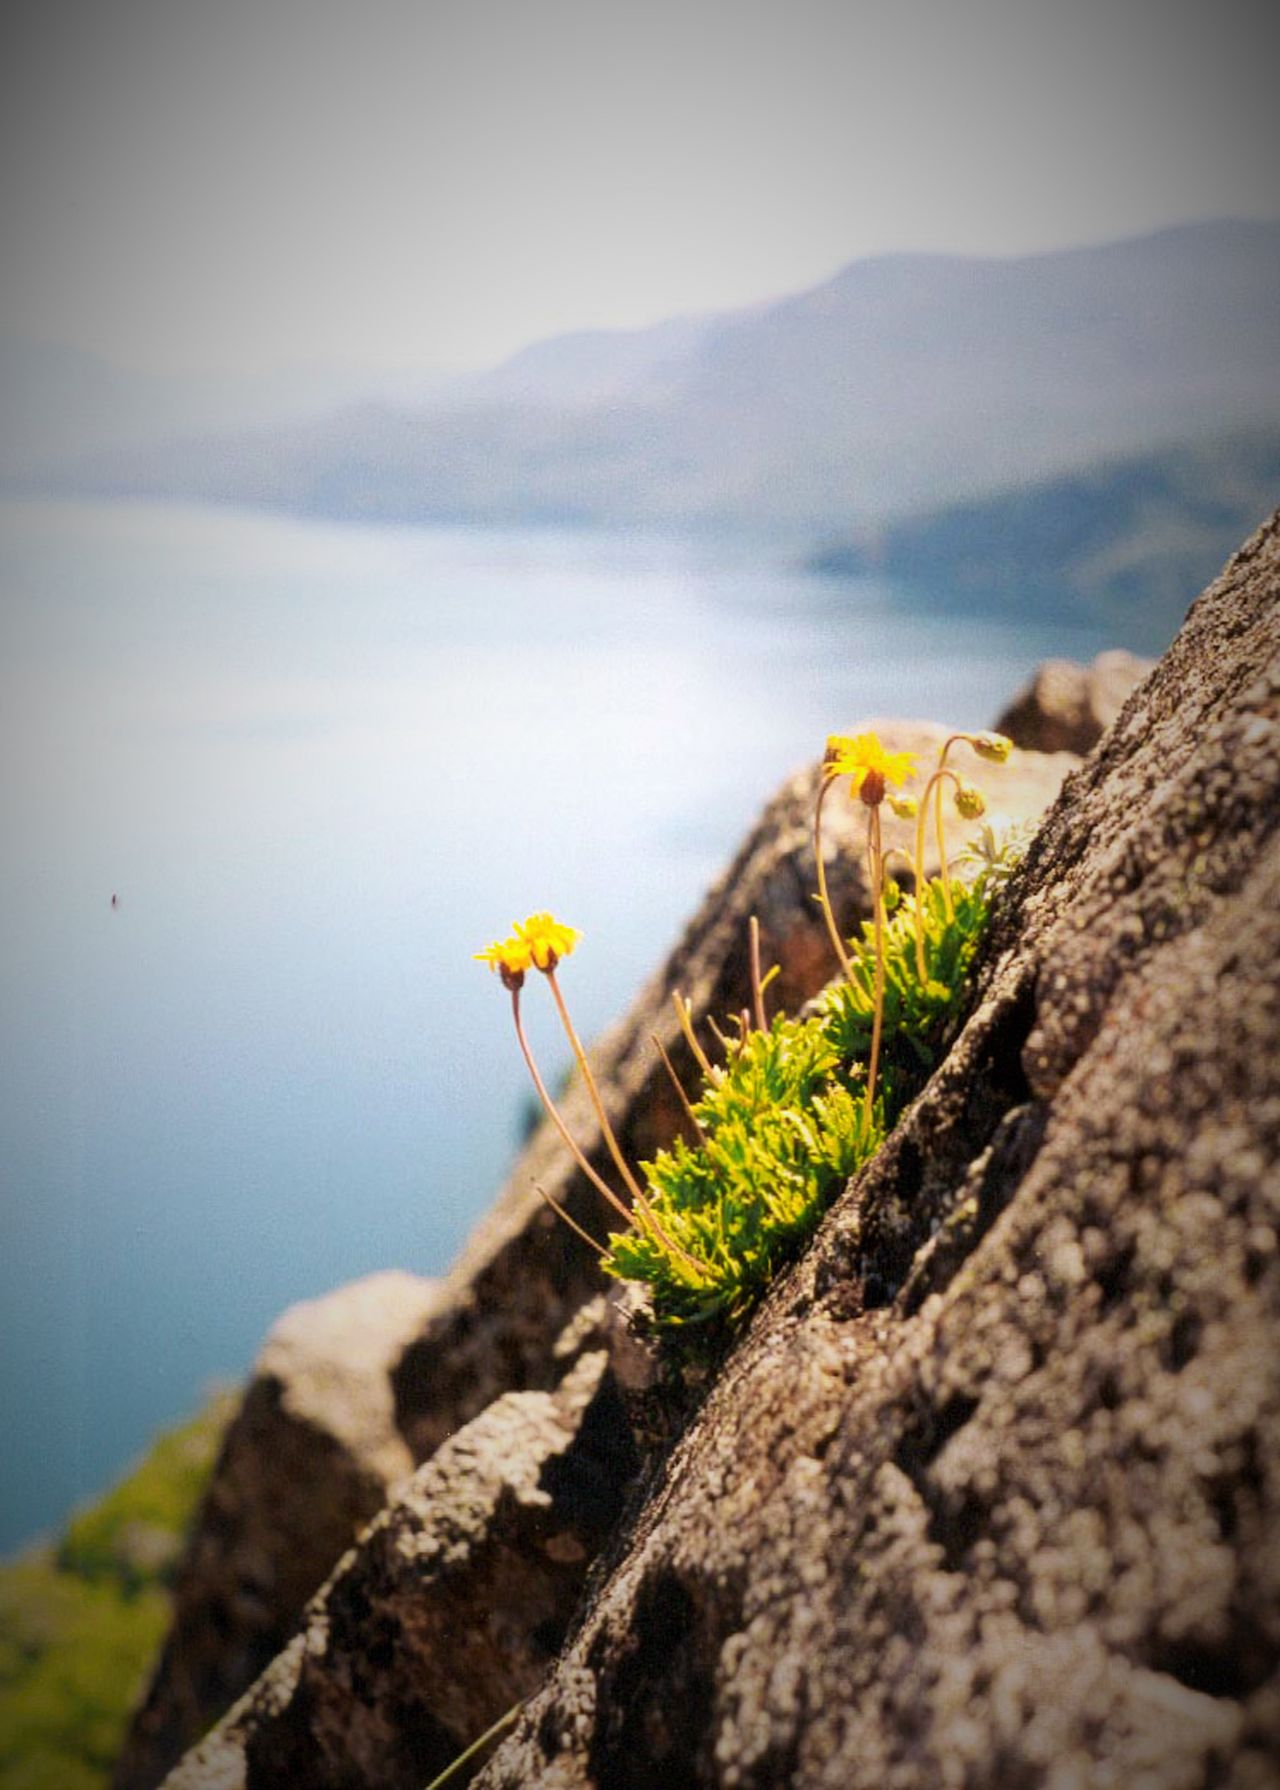 Beauty In Nature Close-up Growing Mountain And Flower Selective Focus Tranquility Yellowflowers The Great Outdoors - 2017 EyeEm Awards